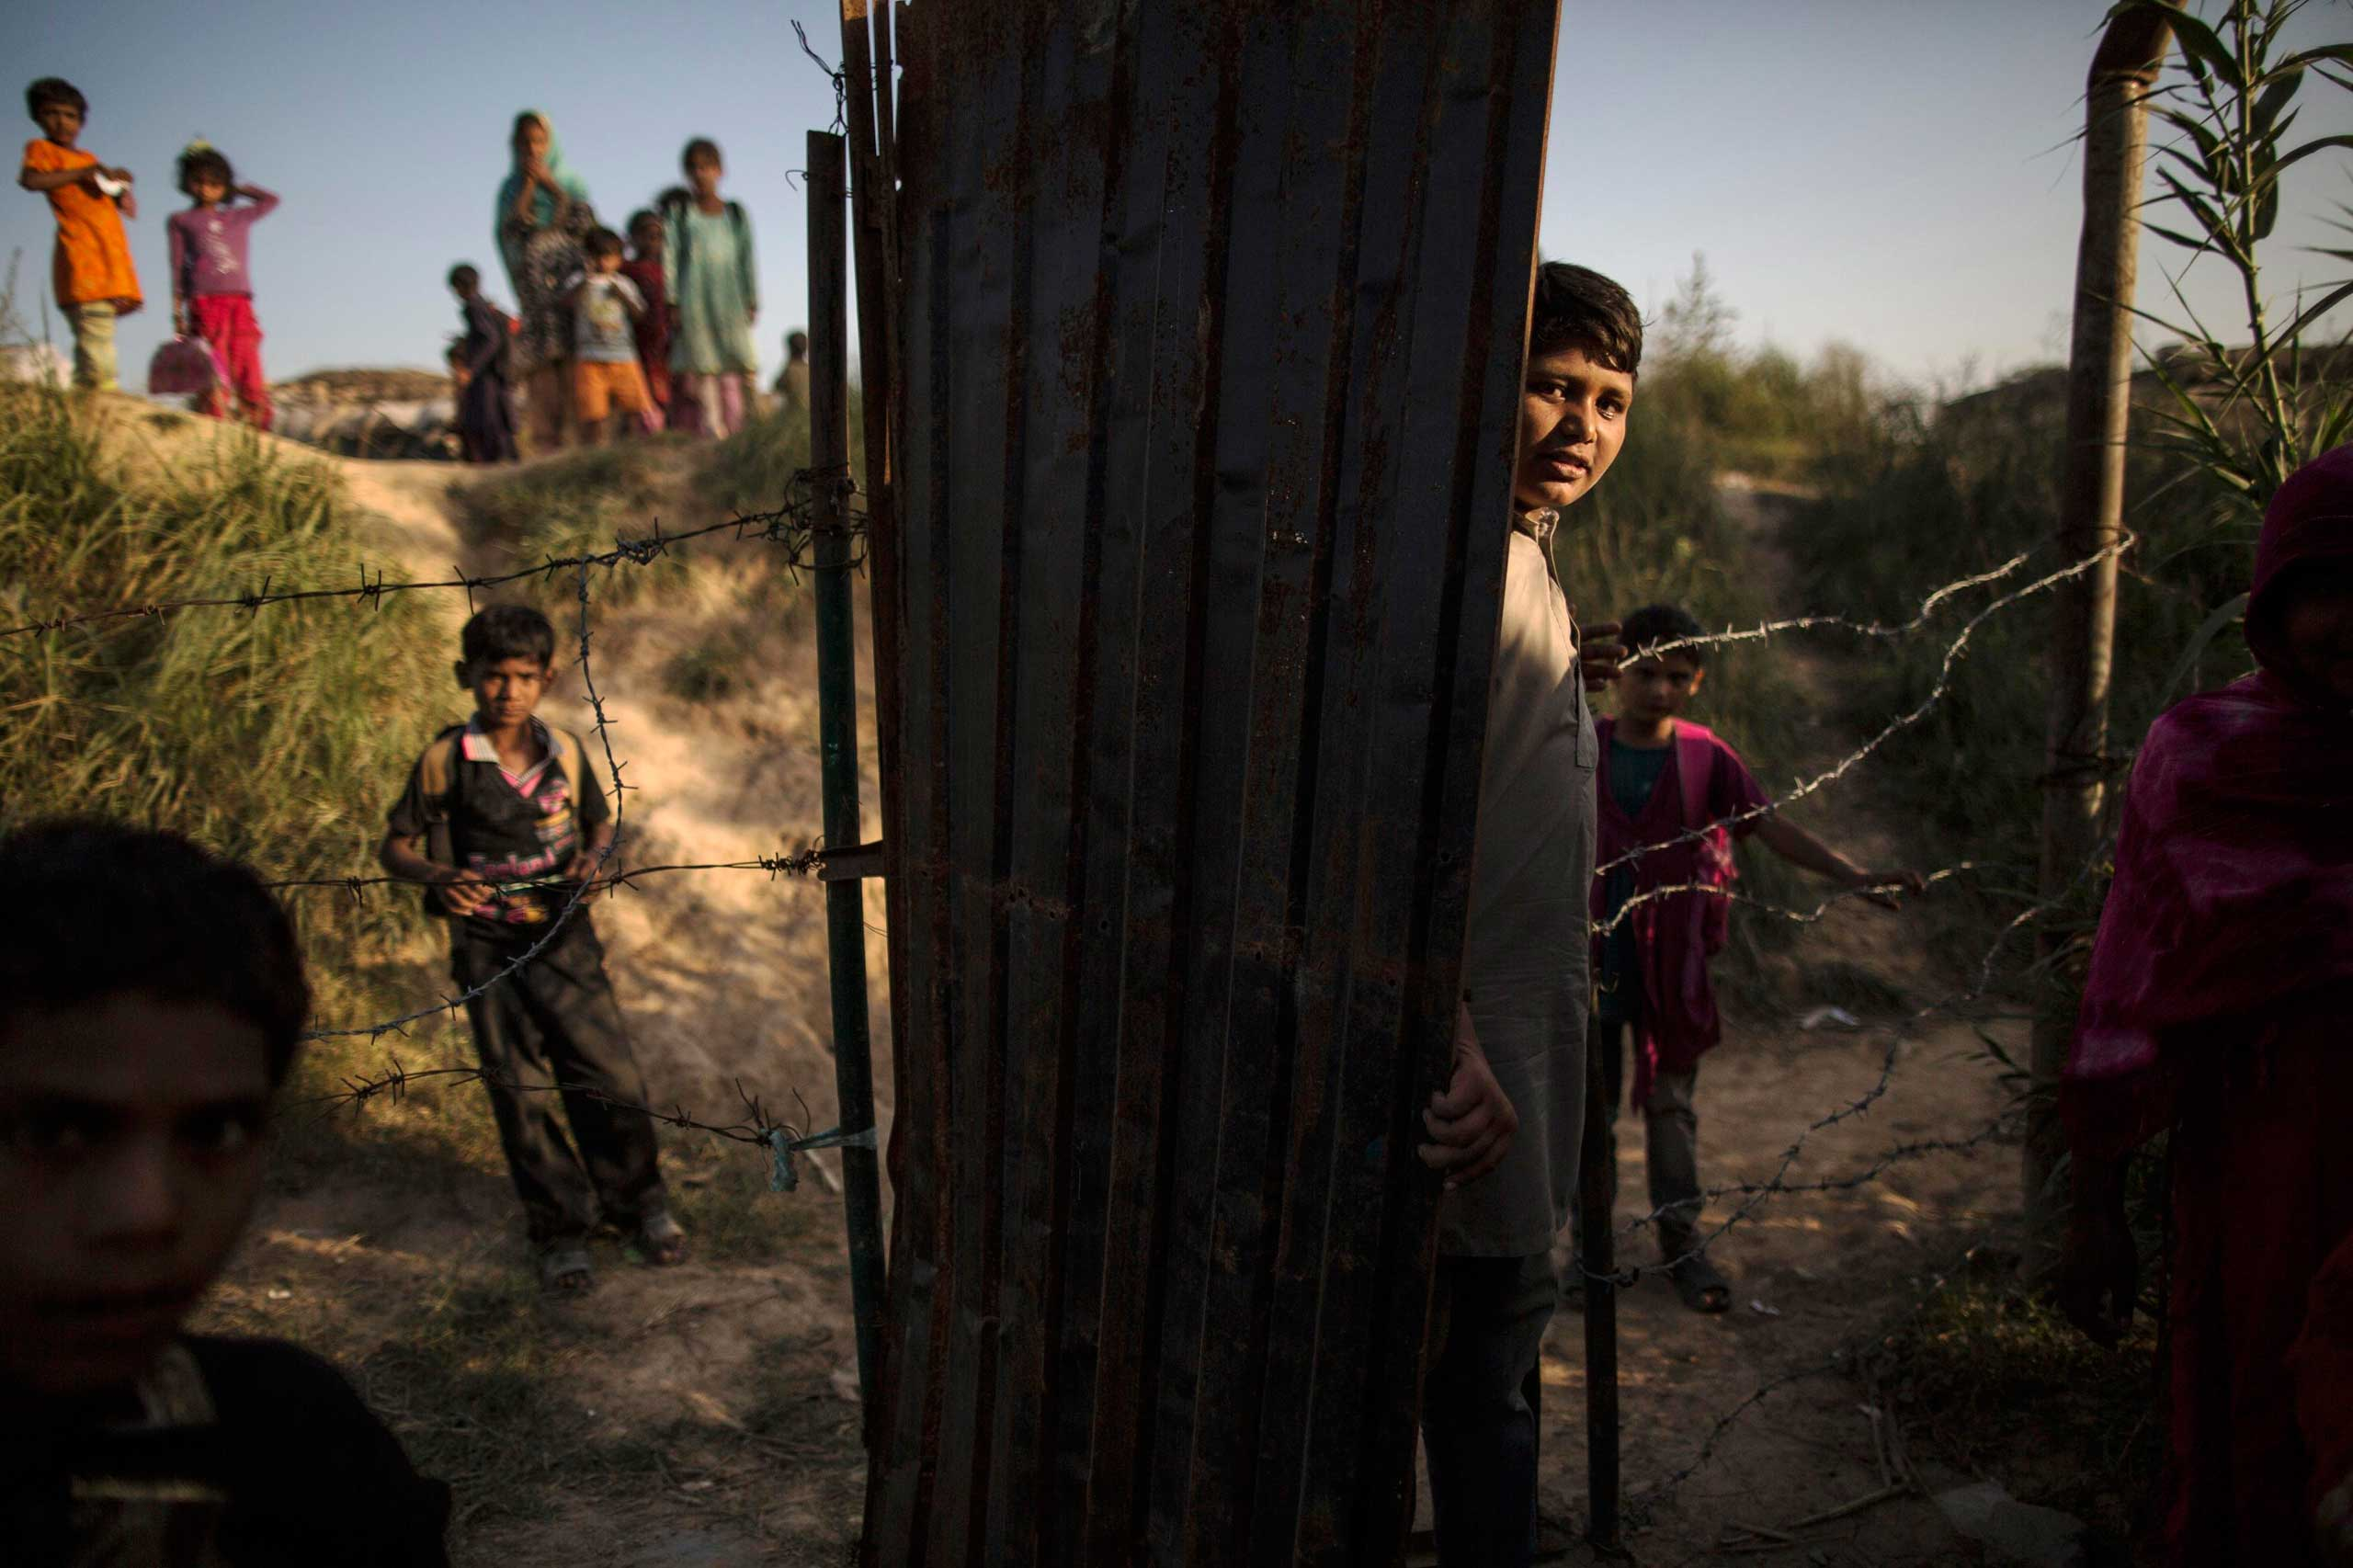 Oct. 22, 2014. Children, whose family moved to Islamabad from Sargodha in Punjab Province to look for work, stand outside their school at a slum in Islamabad.